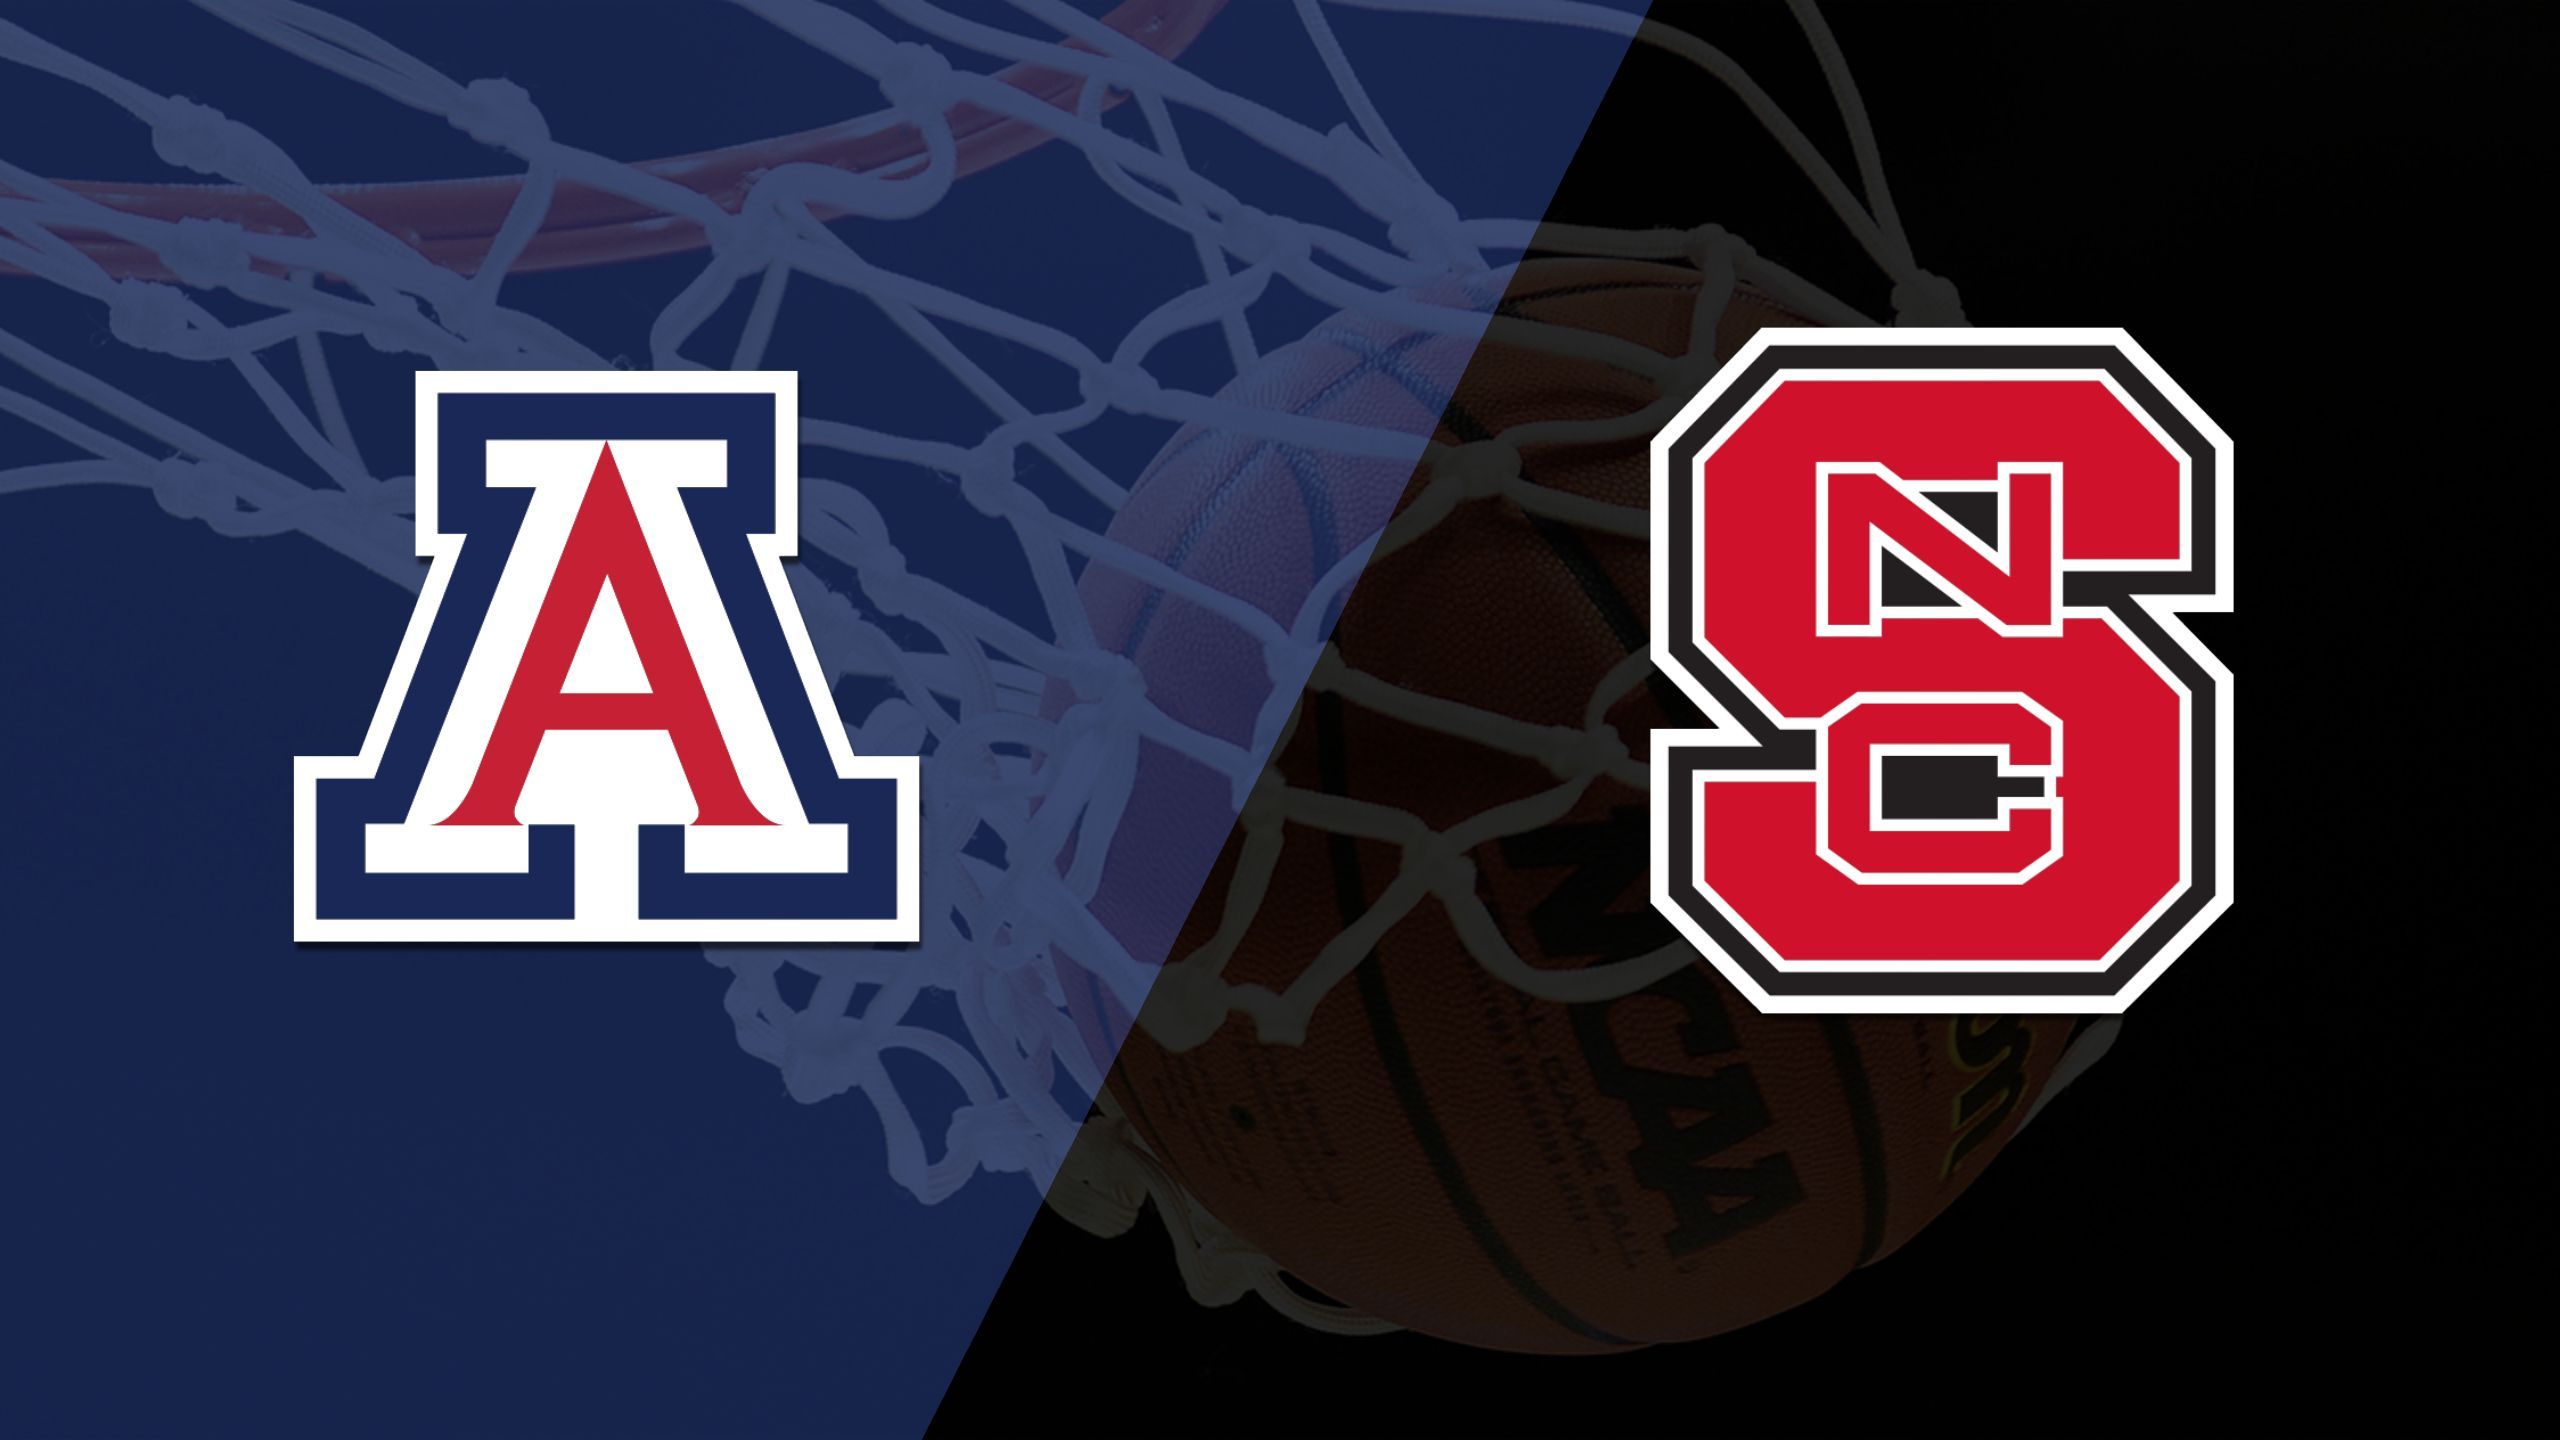 #2 Arizona vs. NC State (Quarterfinal #3) (Battle 4 Atlantis)